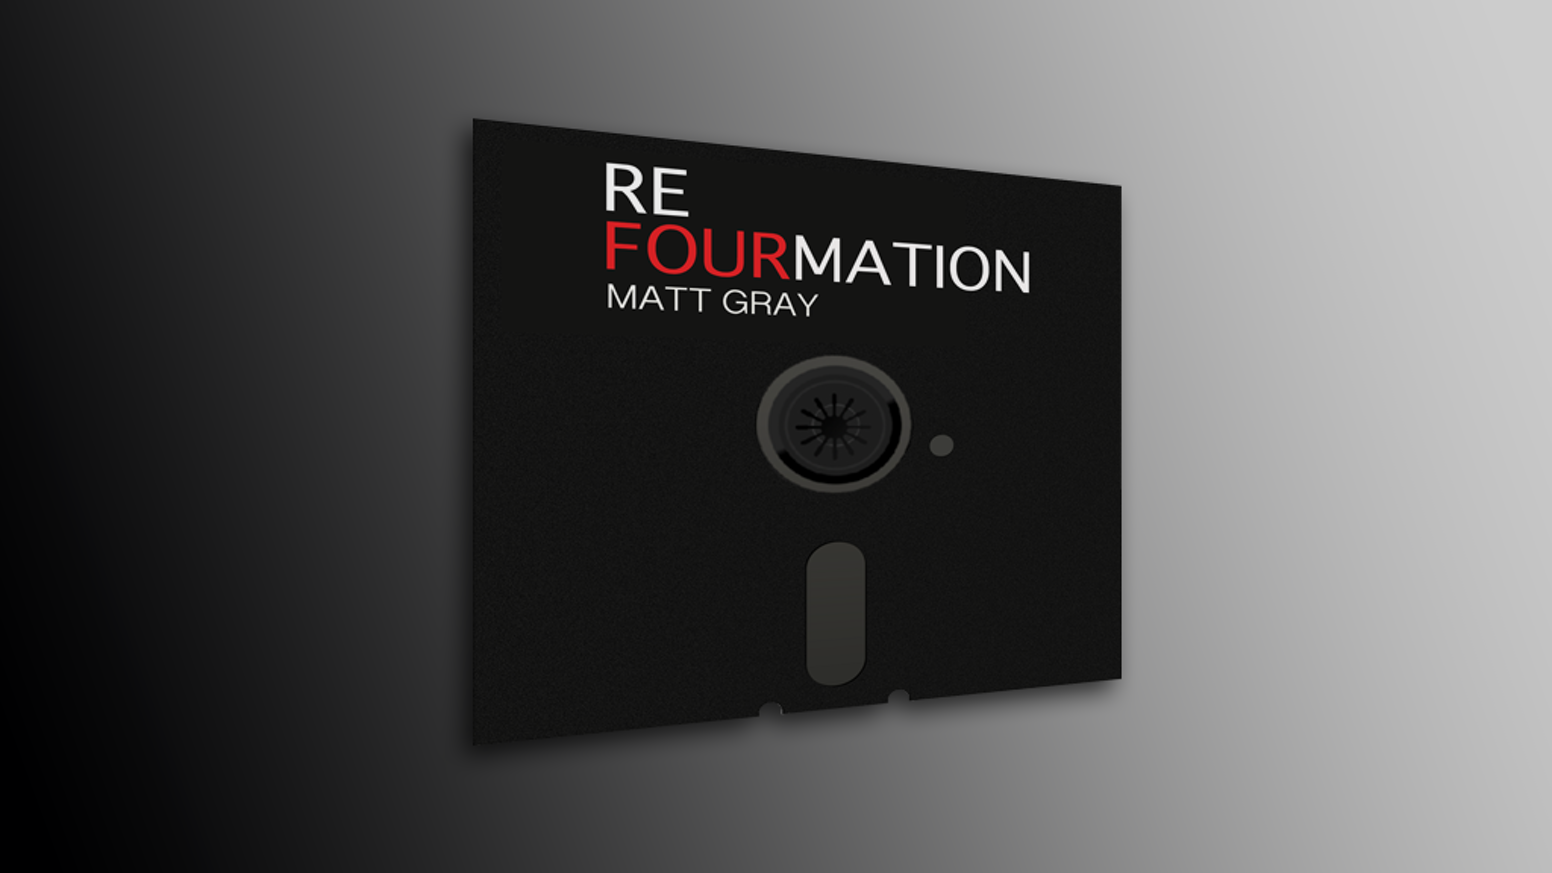 A fourth instalment of the Reformation C64 & Amiga soundtrack remake album series. A double CD of music from the retro gaming era.